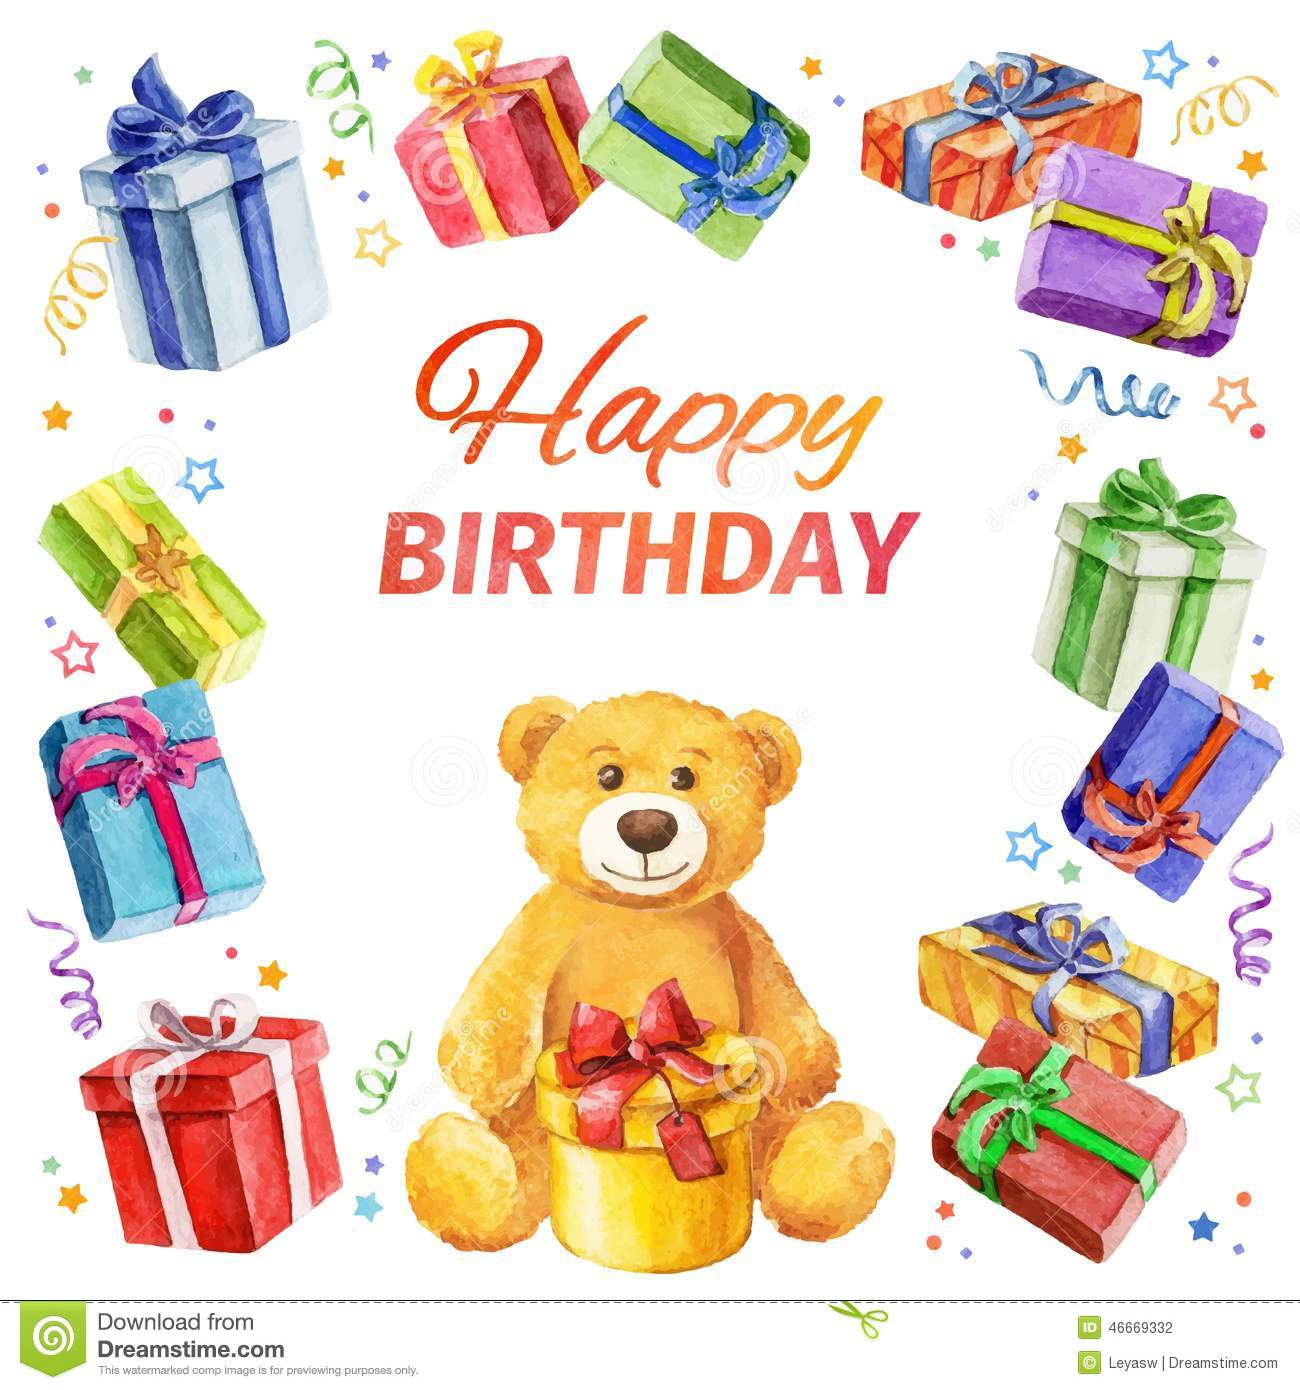 Carte Cadeau Wish Card Happy Birthday Square Frame Of Gifts And Teddy Bear